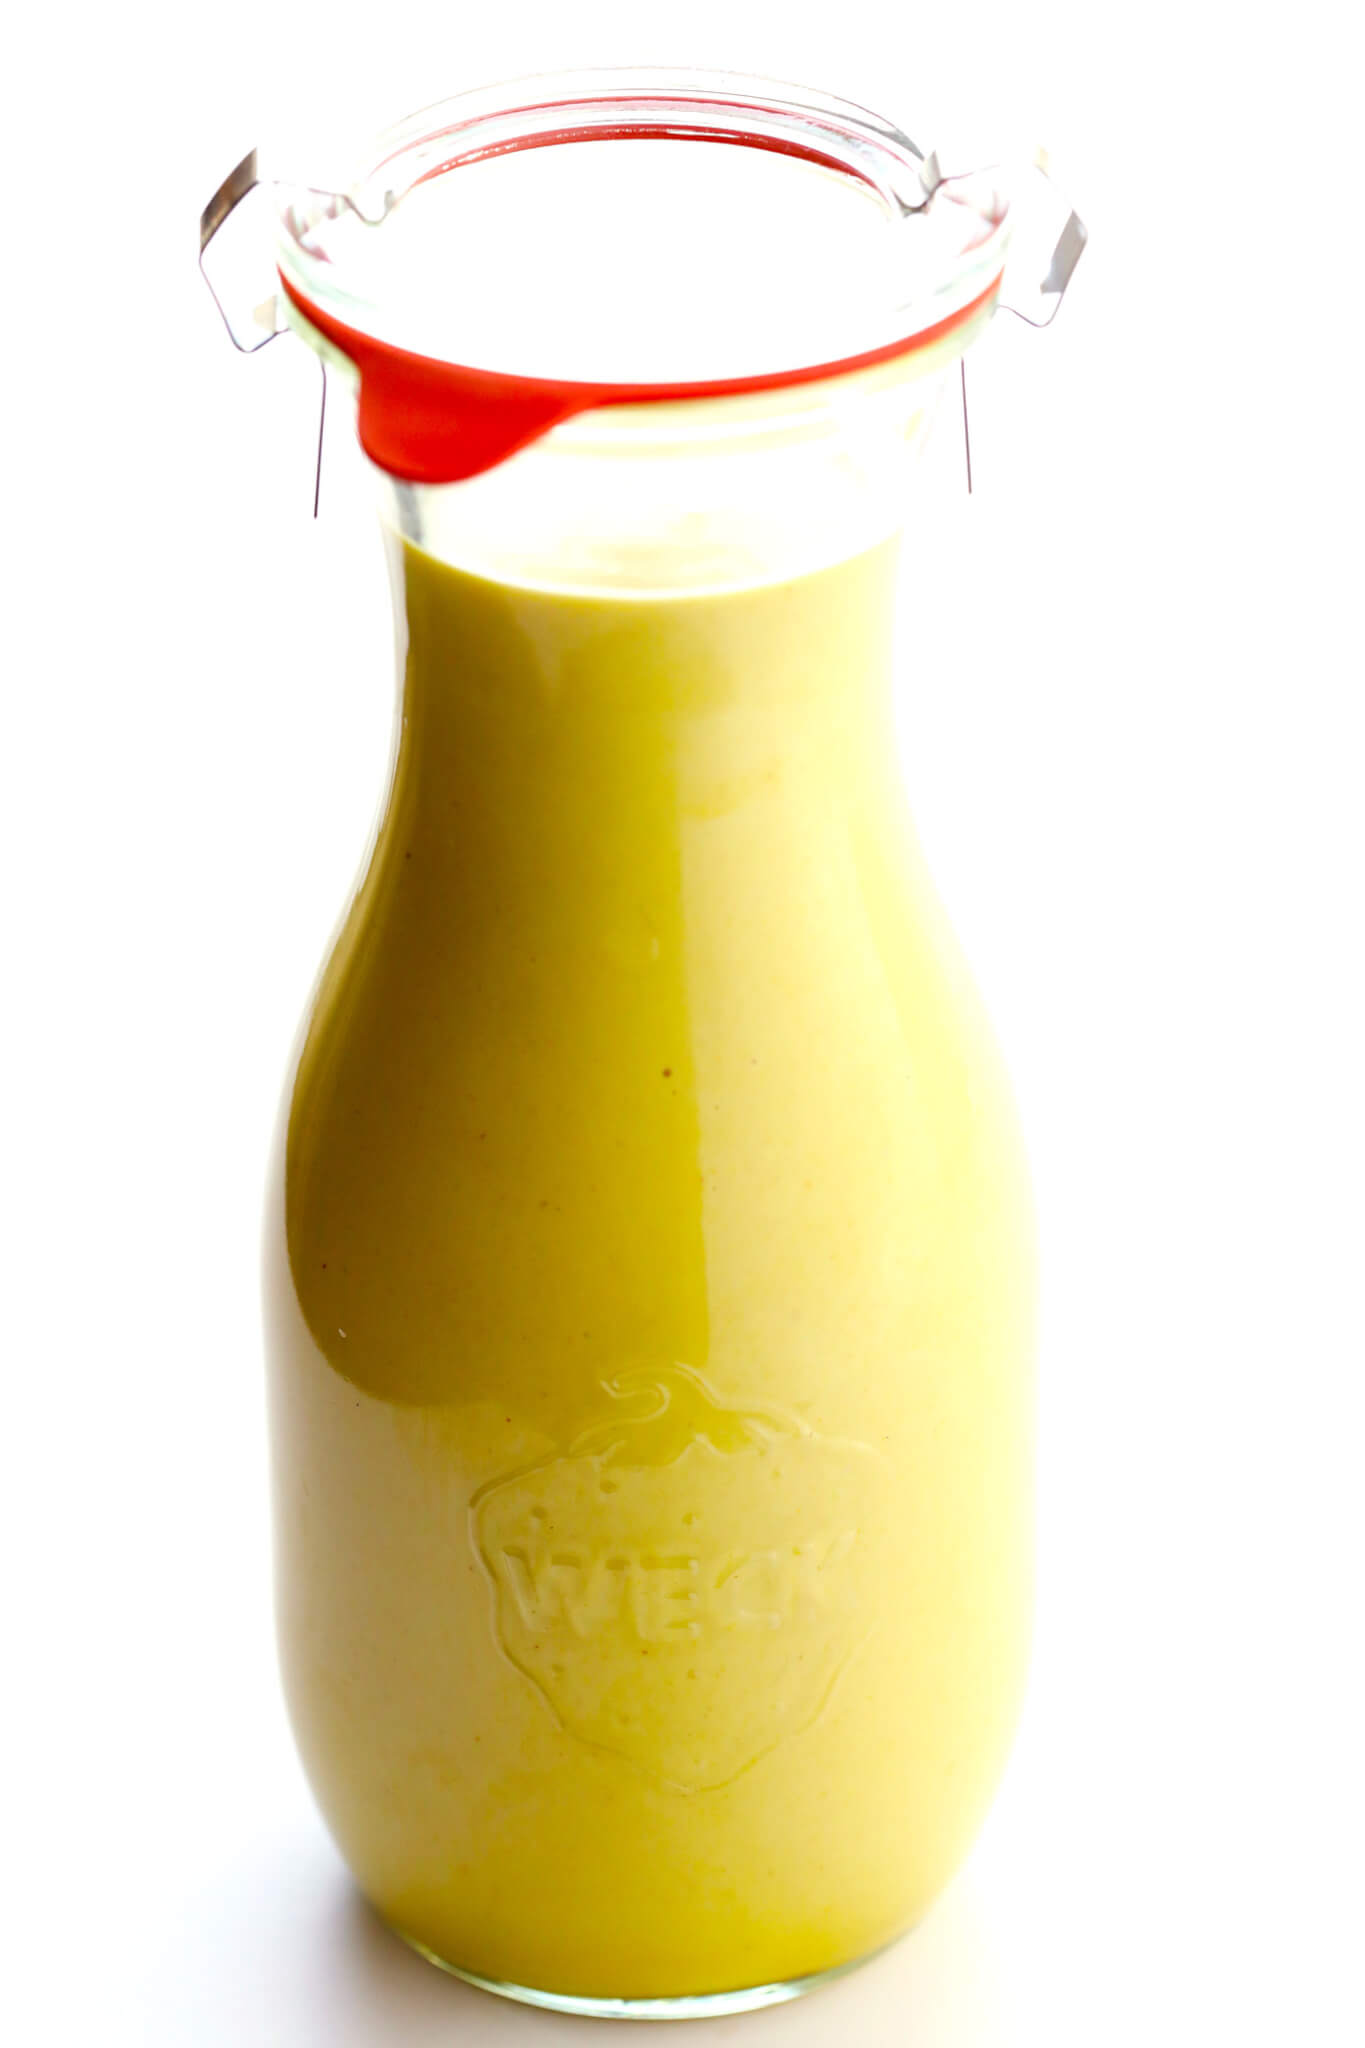 This 4-Ingredient Honey Mustard Dressing is the BEST!! It's super easy to make, perfectly sweet and savory, and always so delicious. Perfect for salads, drizzled on chicken or salmon or veggies, or even used as a dipping sauce.   gimmesomeoven.com (Vegetarian / Gluten-Free)